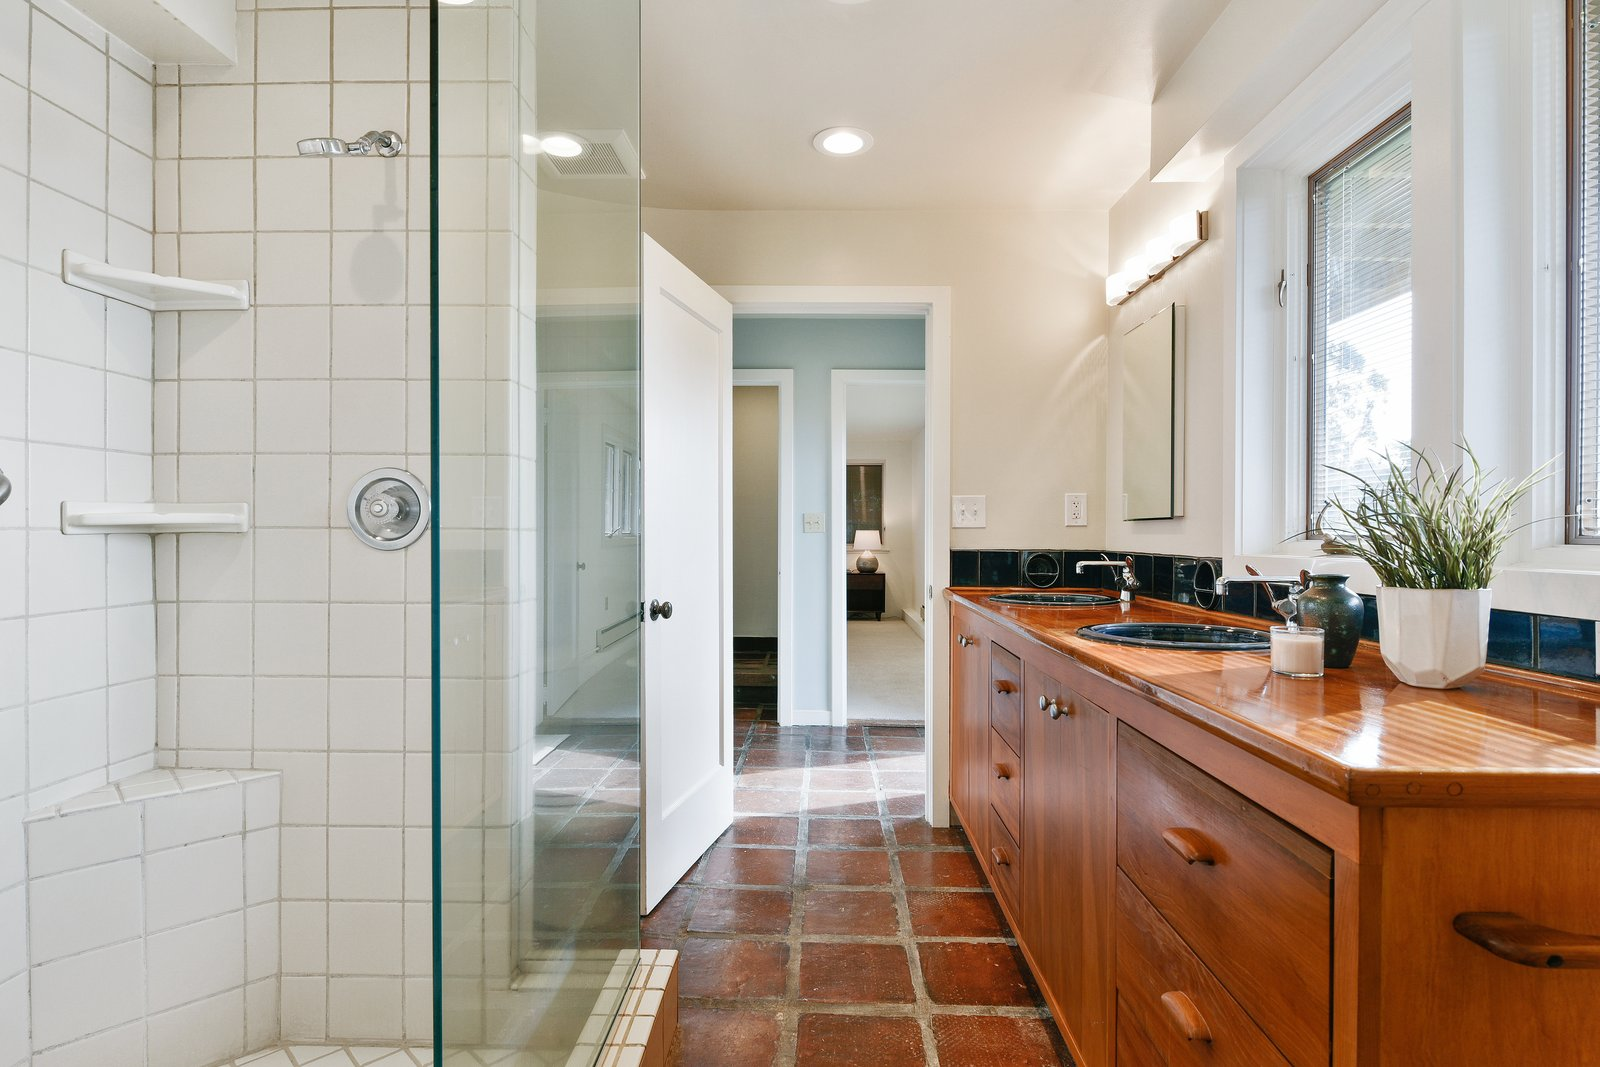 Bath Room, Corner Shower, Wood Counter, Vessel Sink, Recessed Lighting, and Wall Lighting A full bath with a double vanity and walk-in shower is accessible from both bedrooms on the lower level.  Photo 9 of 14 in A Bay Area Jewel With Golden Gate Views Wants $1.55M